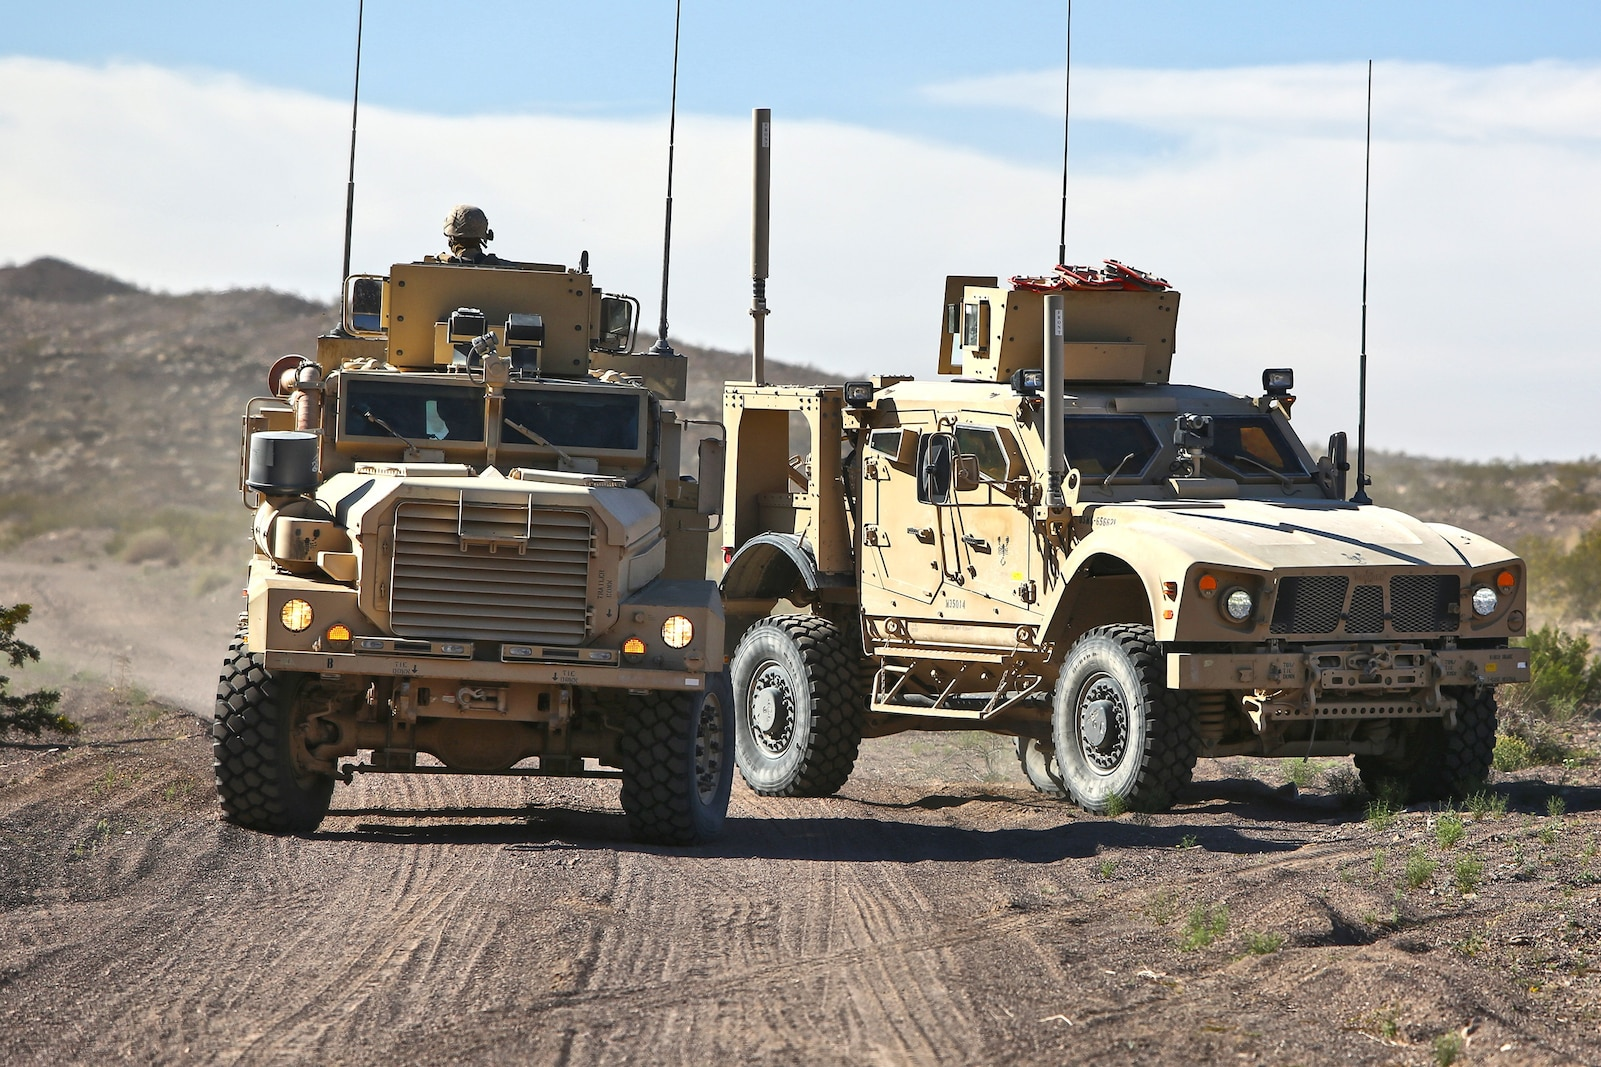 Marines with Combat Logistics Battalion 1, Combat Logistics Regiment 1, 1st Marine Logistics Group, conduct a combat logistics patrol during the Marine Readiness Exercise aboard Marine Corps Air Ground Combat Center Twenty-nine Palms, Calif., March 24, 2014. The MRX is the culminating exercise of the month-long Integrated Training Exercise 3-14 that prepares the battalion for its role, as the logistics combat element, in the final combat deployment in support of Operation Enduring Freedom.